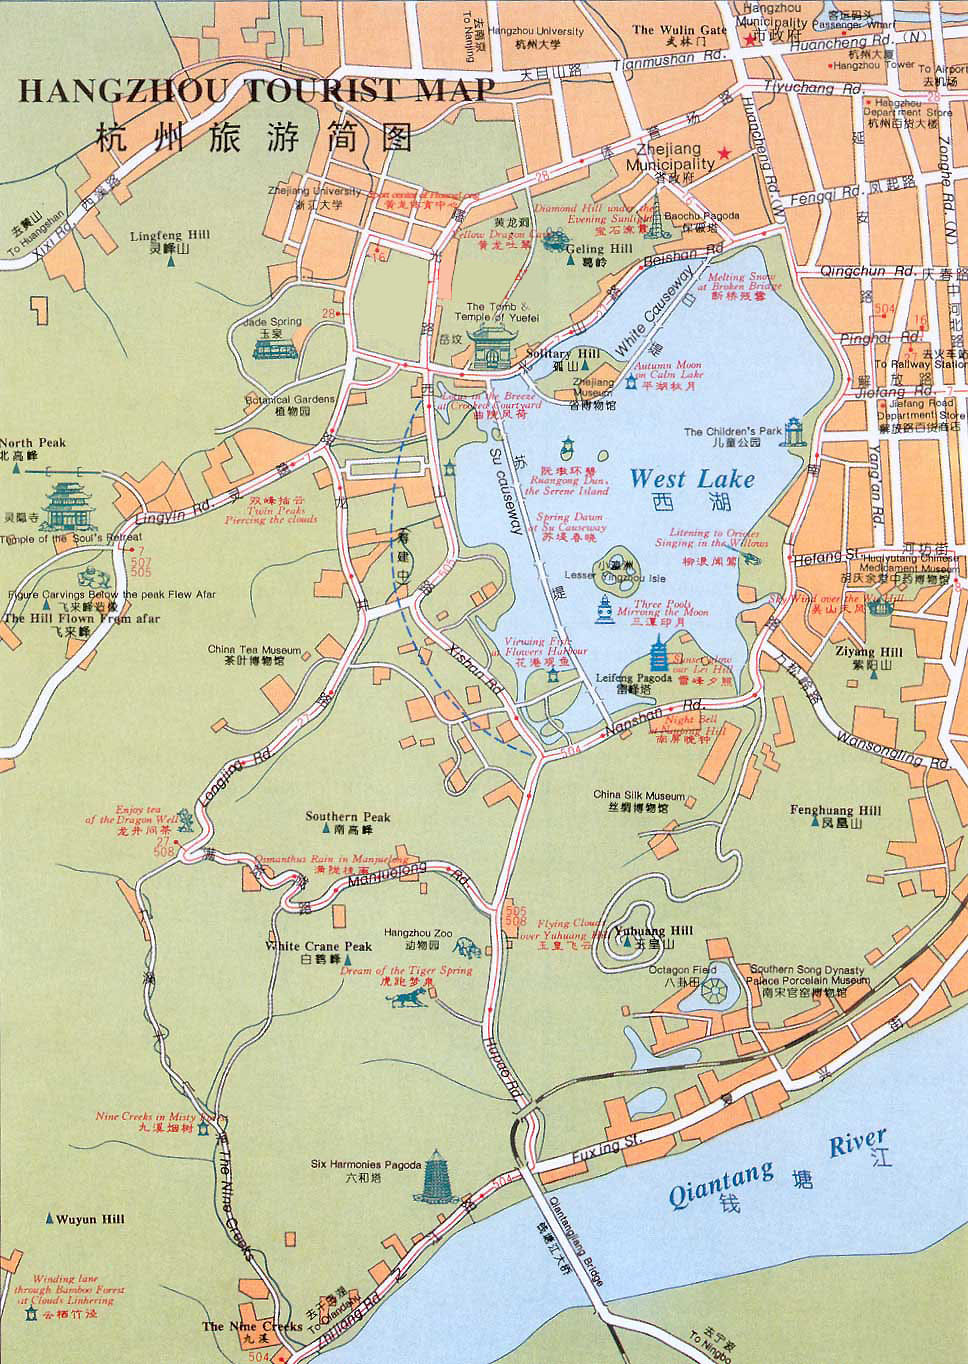 Hangzhou China Map Hangzhou Maps, Map of Hangzhou China, Hangzhou Tourist maps